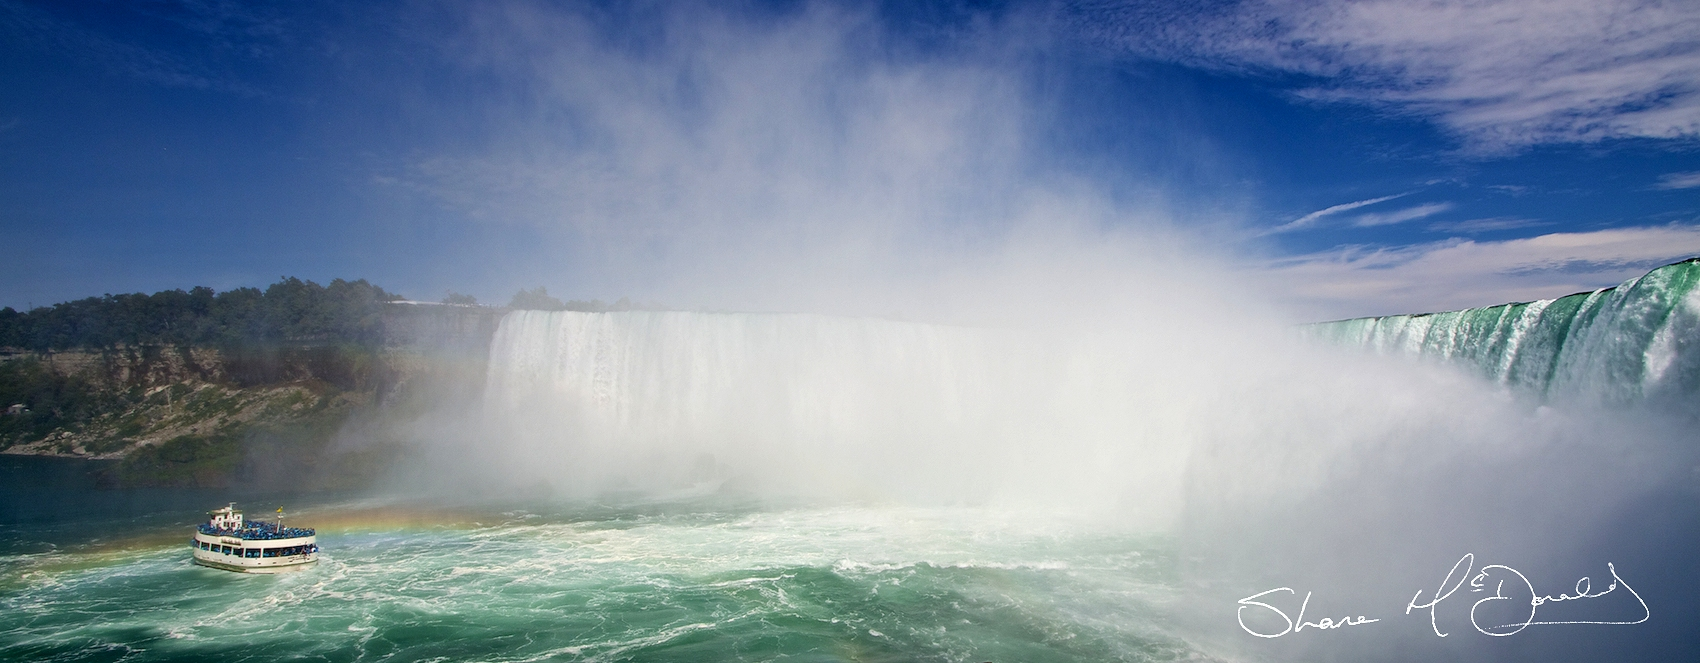 Niagara Falls, ON, Canada - Panoramic View of Niagara Falls Canada